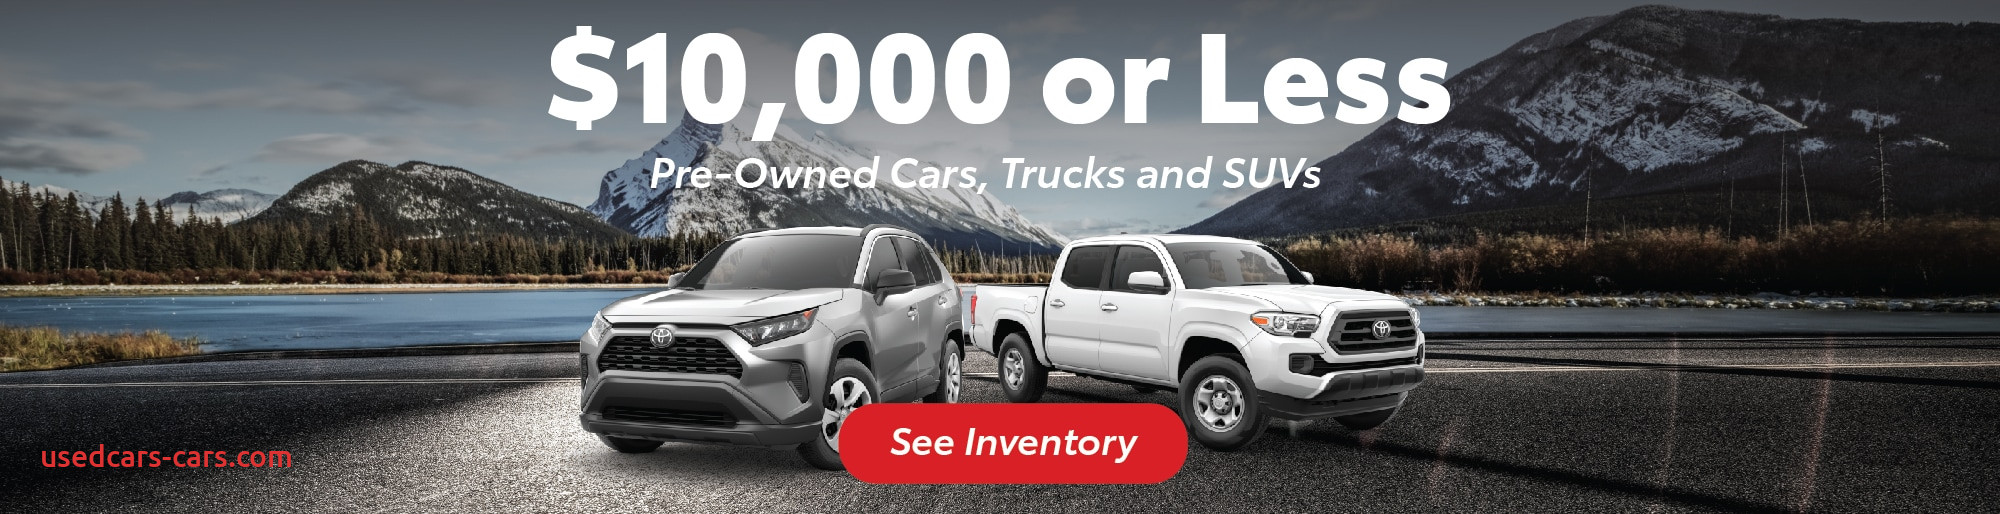 Used Cars for Sale $10000 by Owner New Used Cars for Sale Under $10 000